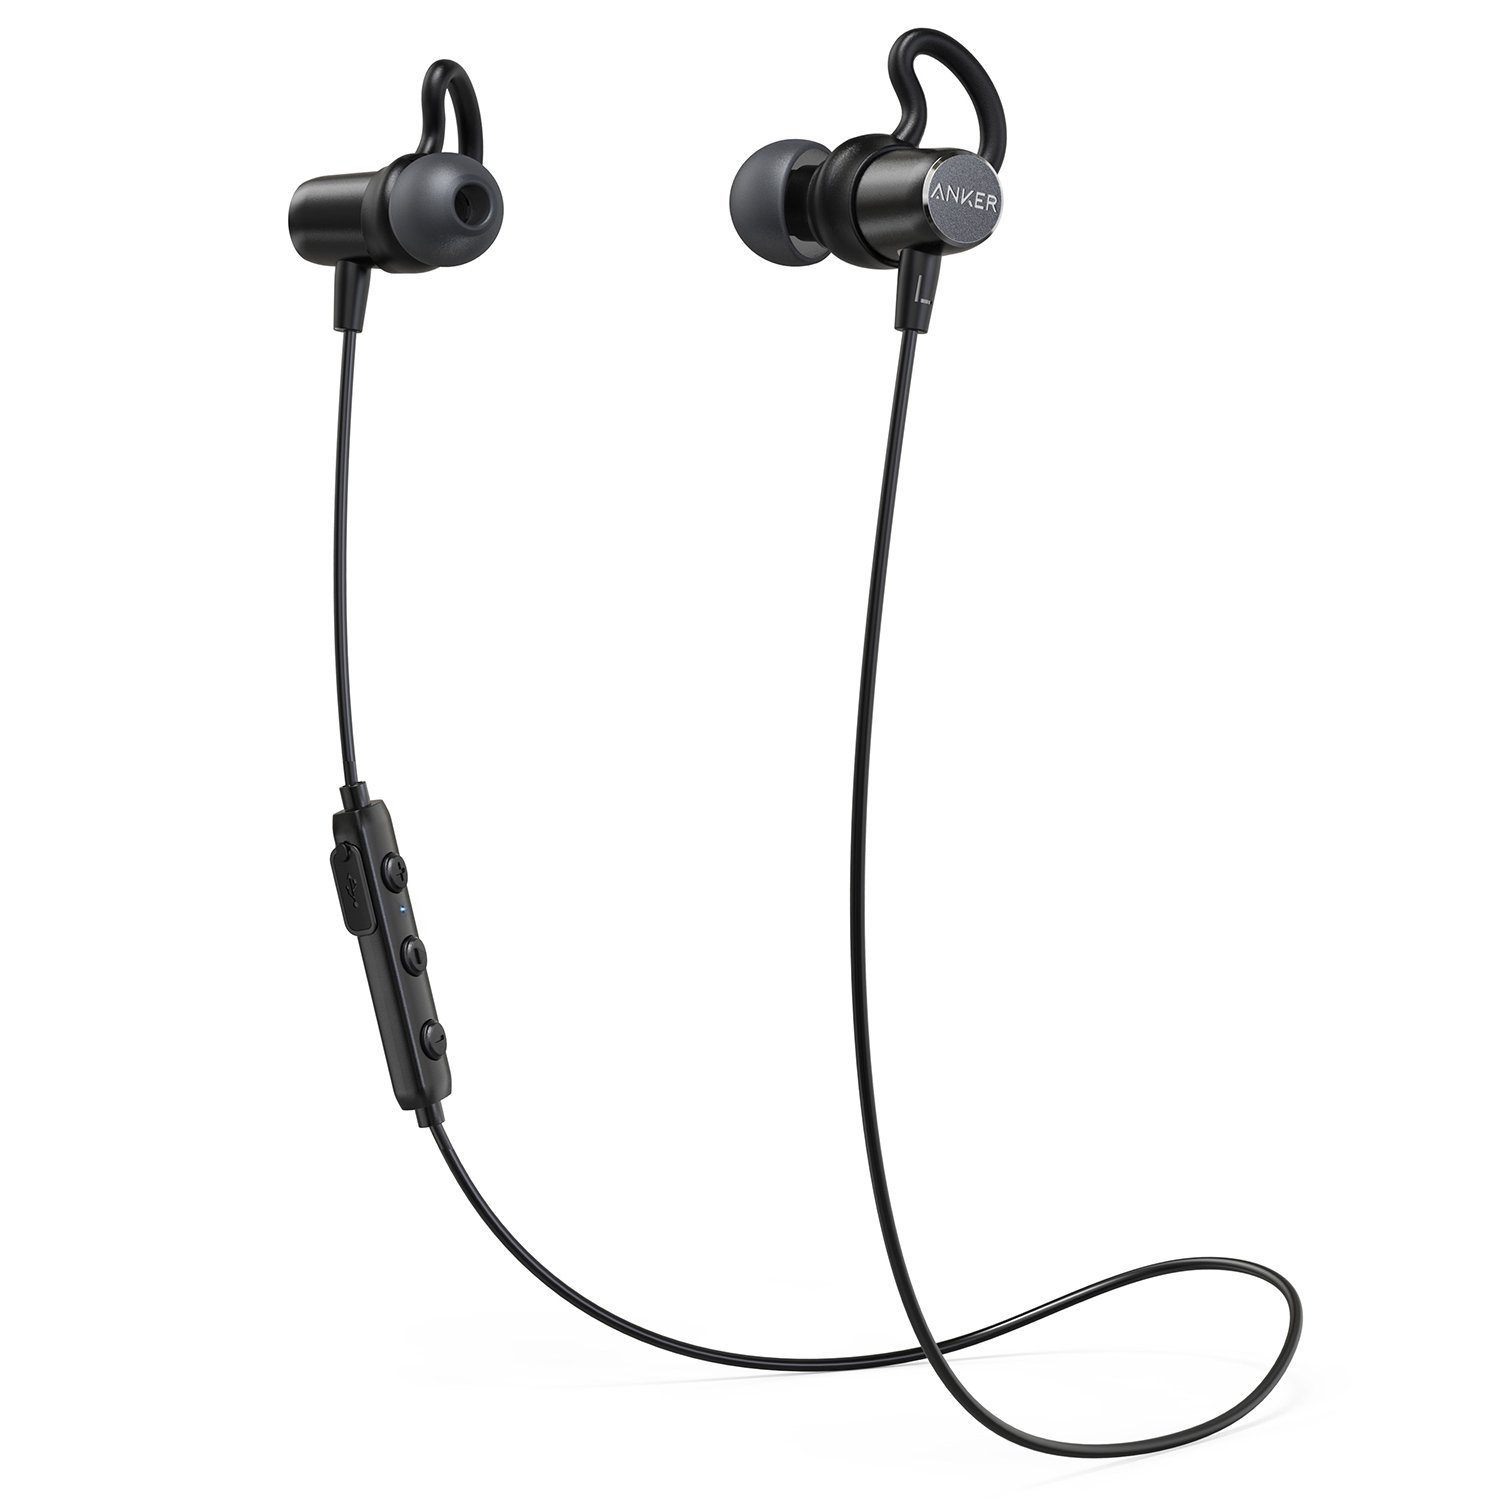 Anker SoundBuds Surge Lightweight Wireless Headphones, Bluetooth 4.1 Sports Earphones with Water-Resistant Nano Coating, Running Workout Headset with Magnetic Connector and Carry Pouch by Anker (Image #1)